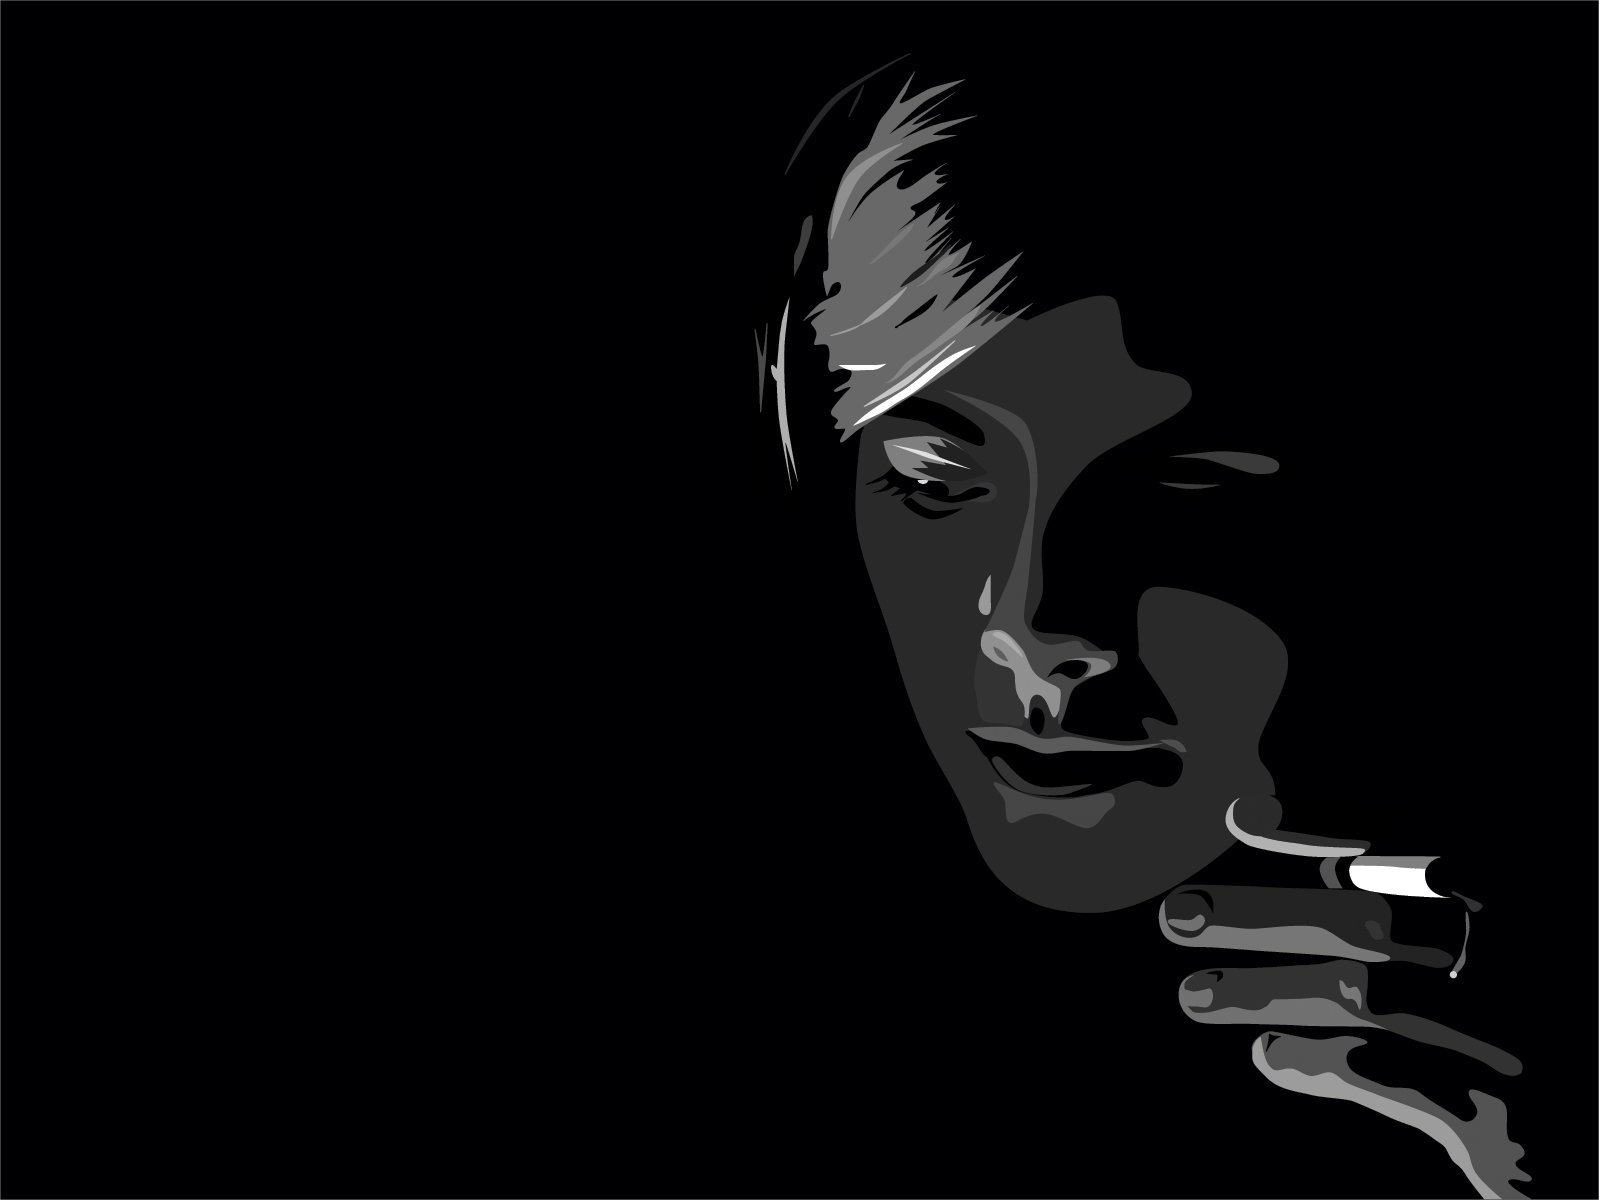 Beautiful Shadow Face With Smoke HD Wallpaper For Your PC Computer